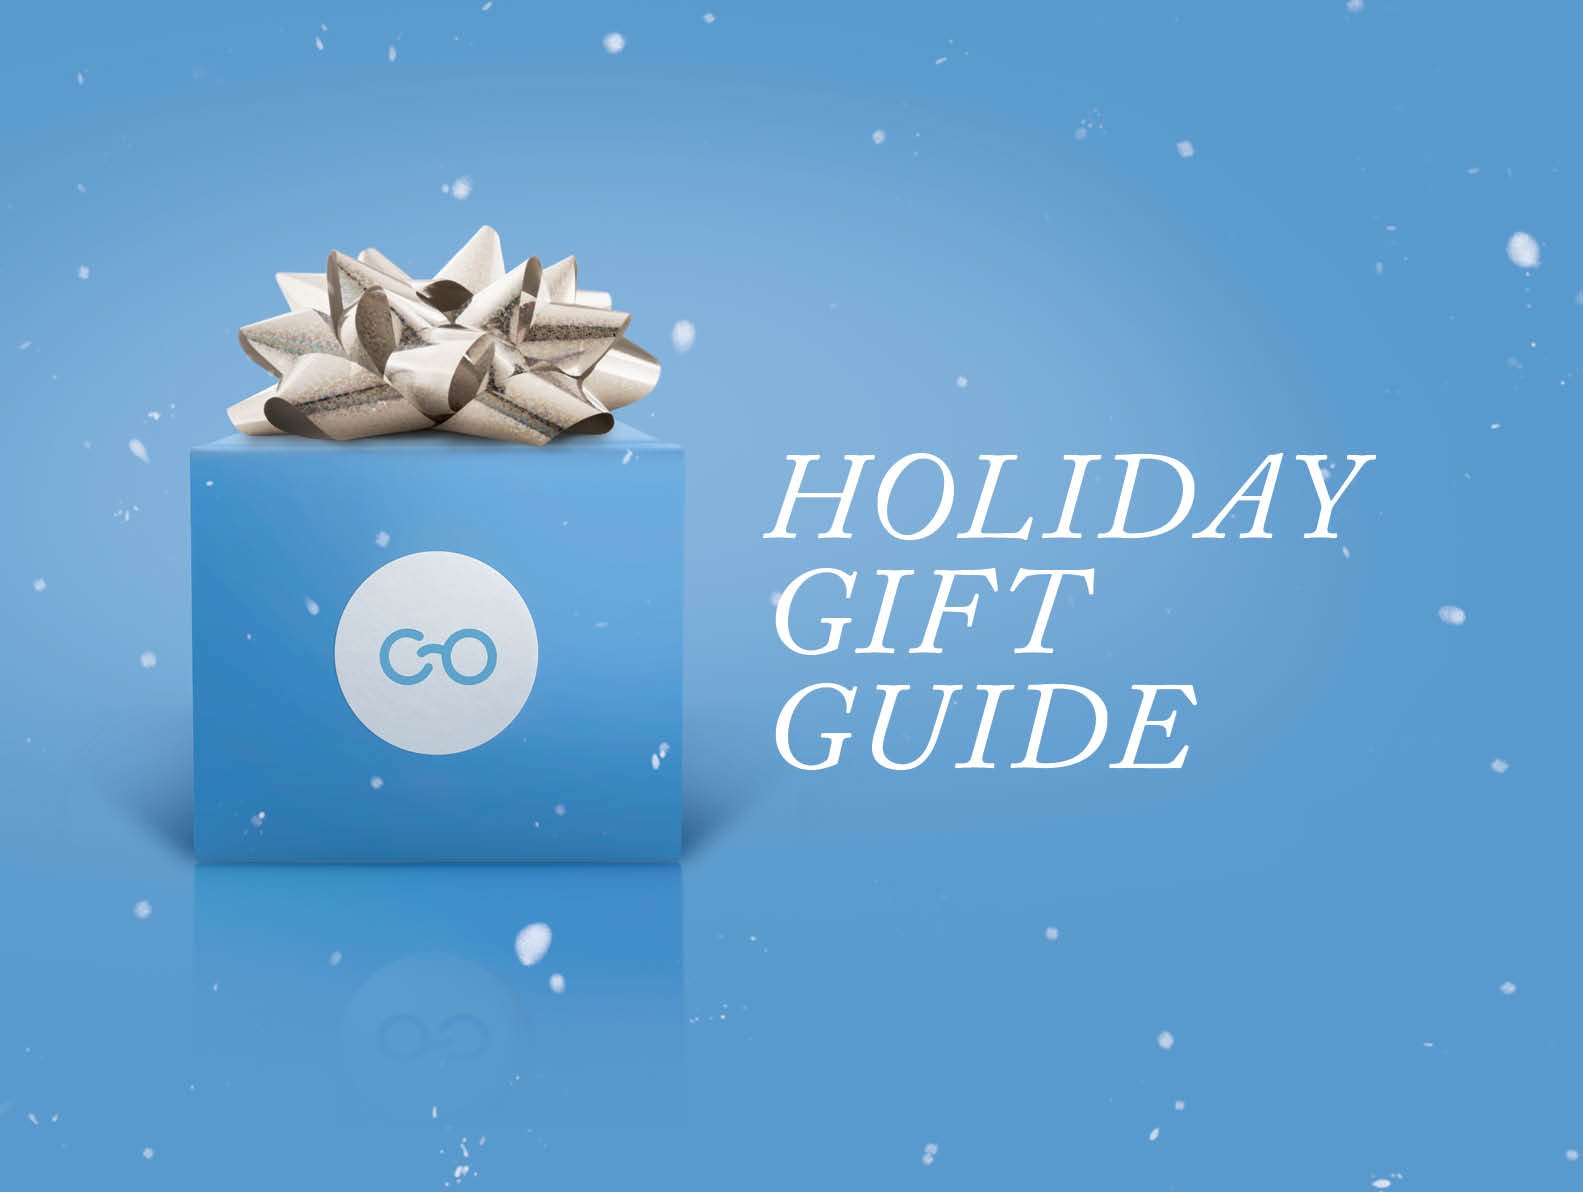 Eye glasses gift guide